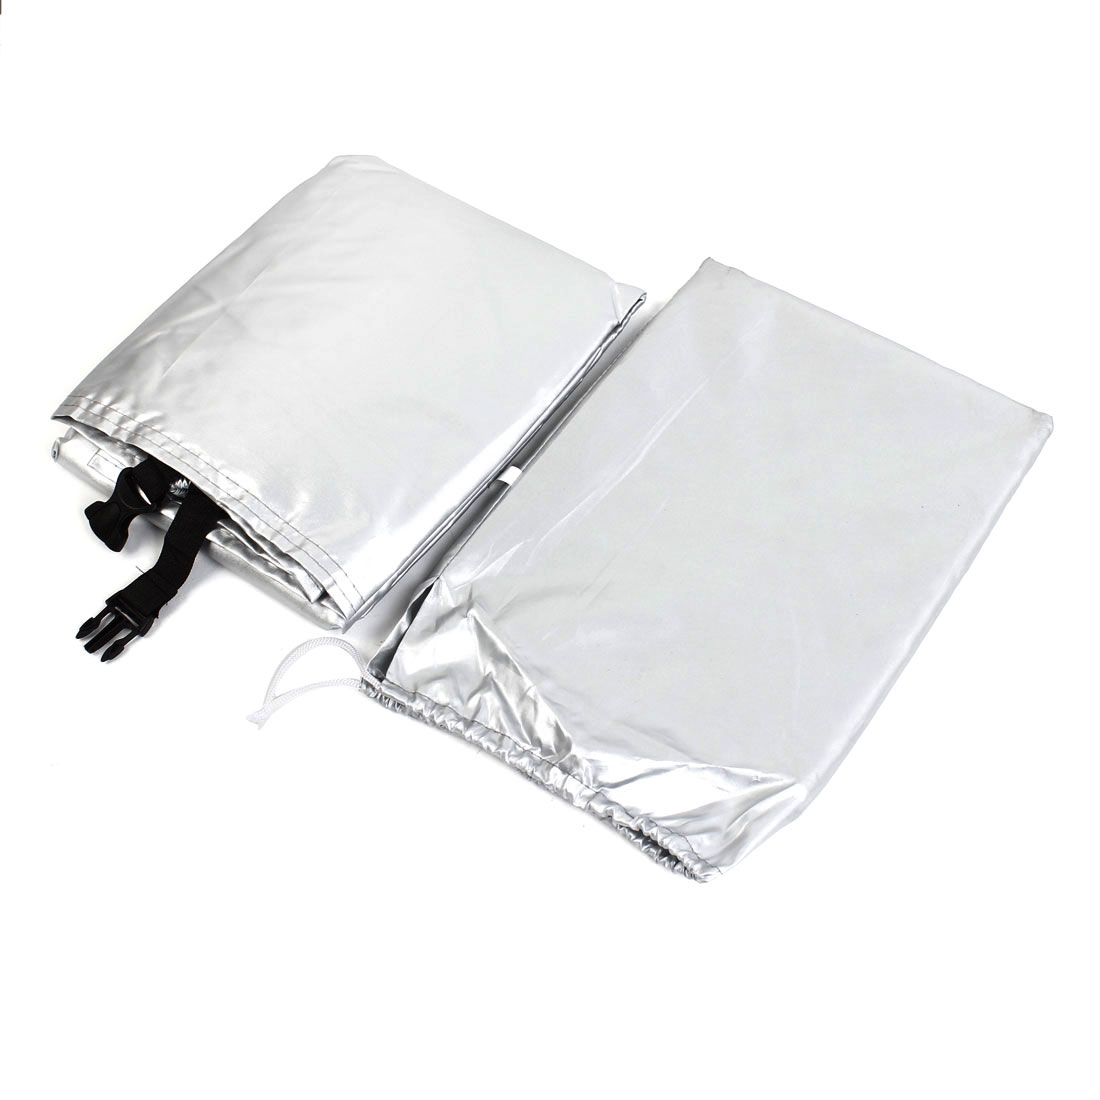 Silver Tone 180T Polyester Waterproof Dust Resistant Bike Cover 190 x 65 x 98cm